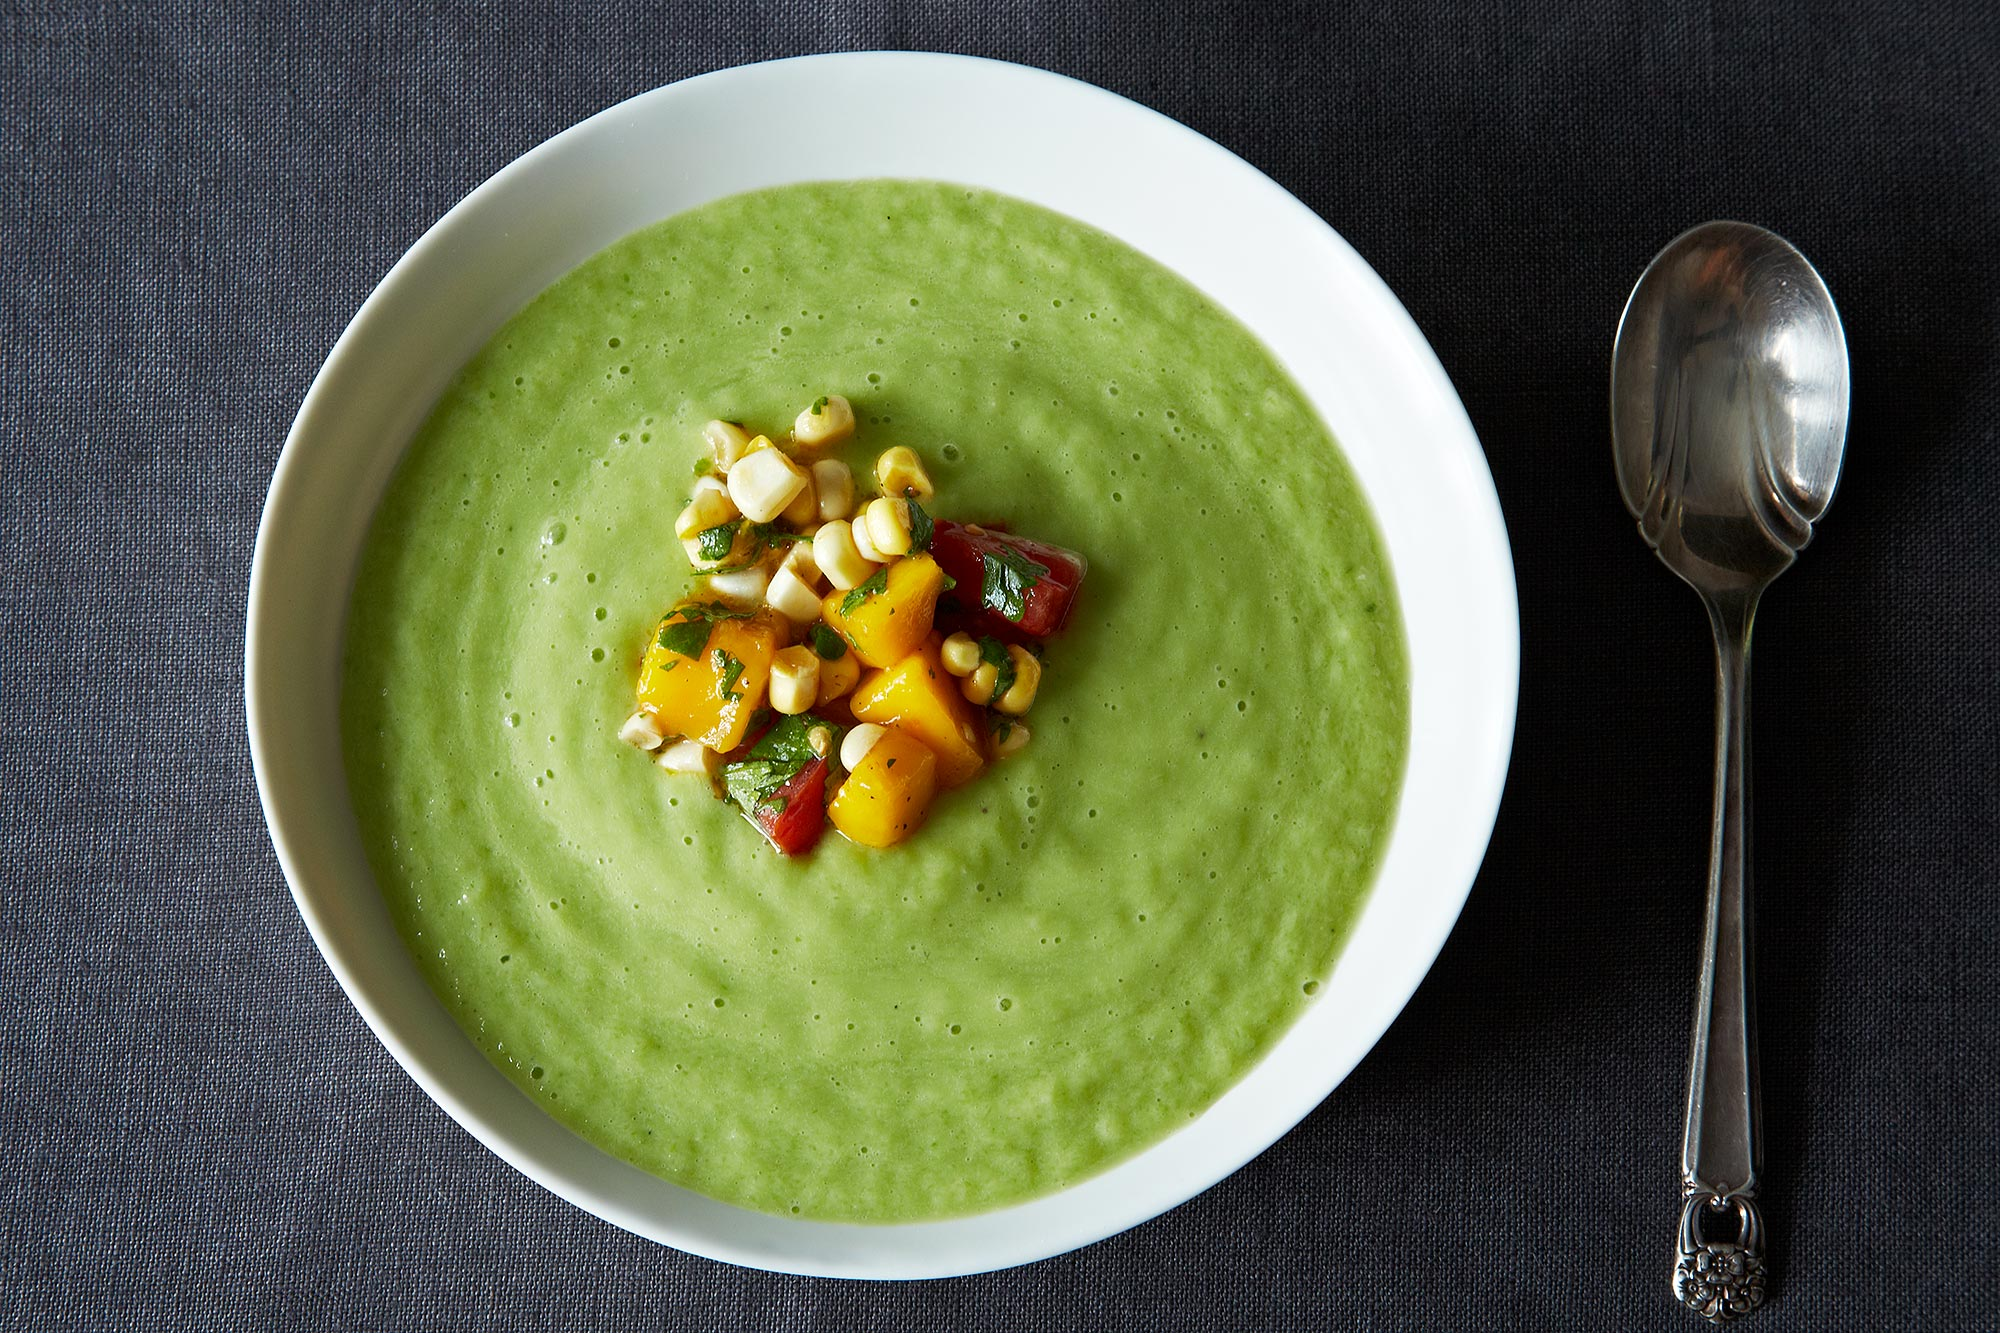 Chilled Cucumber and Avocado Soup on Food52